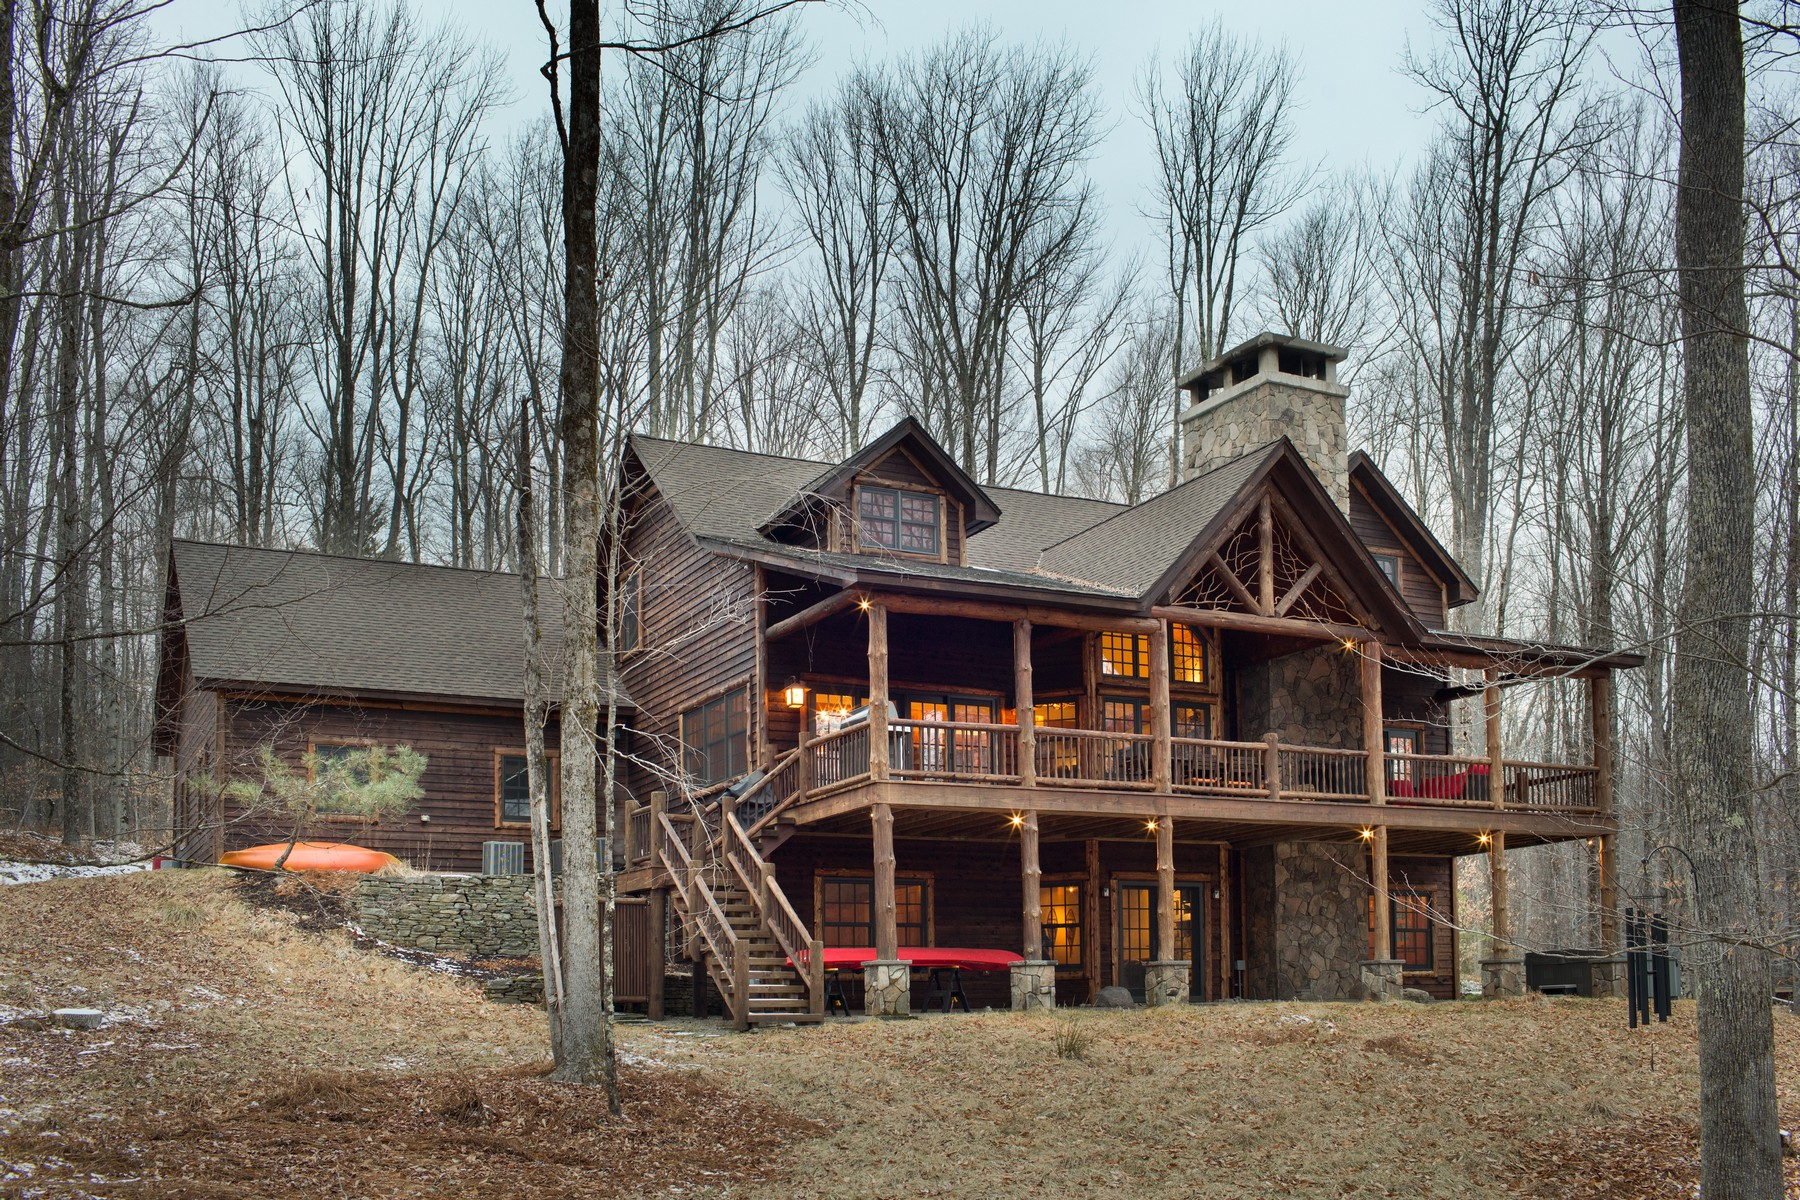 Single Family Home for Sale at Lodge on Sunrise Cove at The Chapin Estate 47 Sunrise Point Bethel, New York 12720 United States